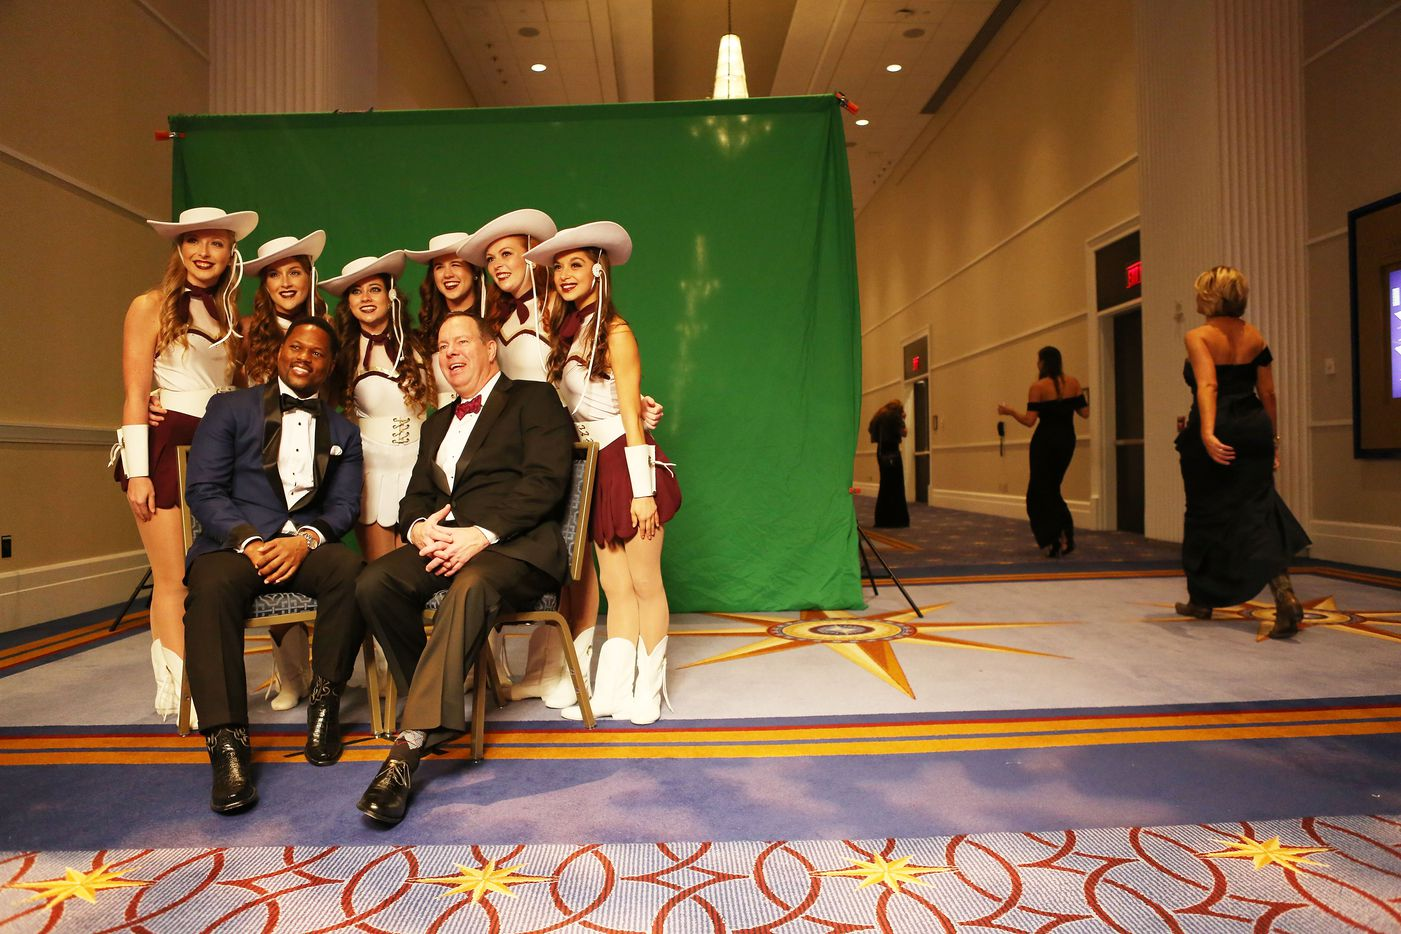 Revelers pose for an official photo at the Texas Black Tie and Boots inaugural ball on January 19, 2017 in National Harbor, Maryland. President-elect Donald Trump will be sworn in as the 45th president of the United States tomorrow.